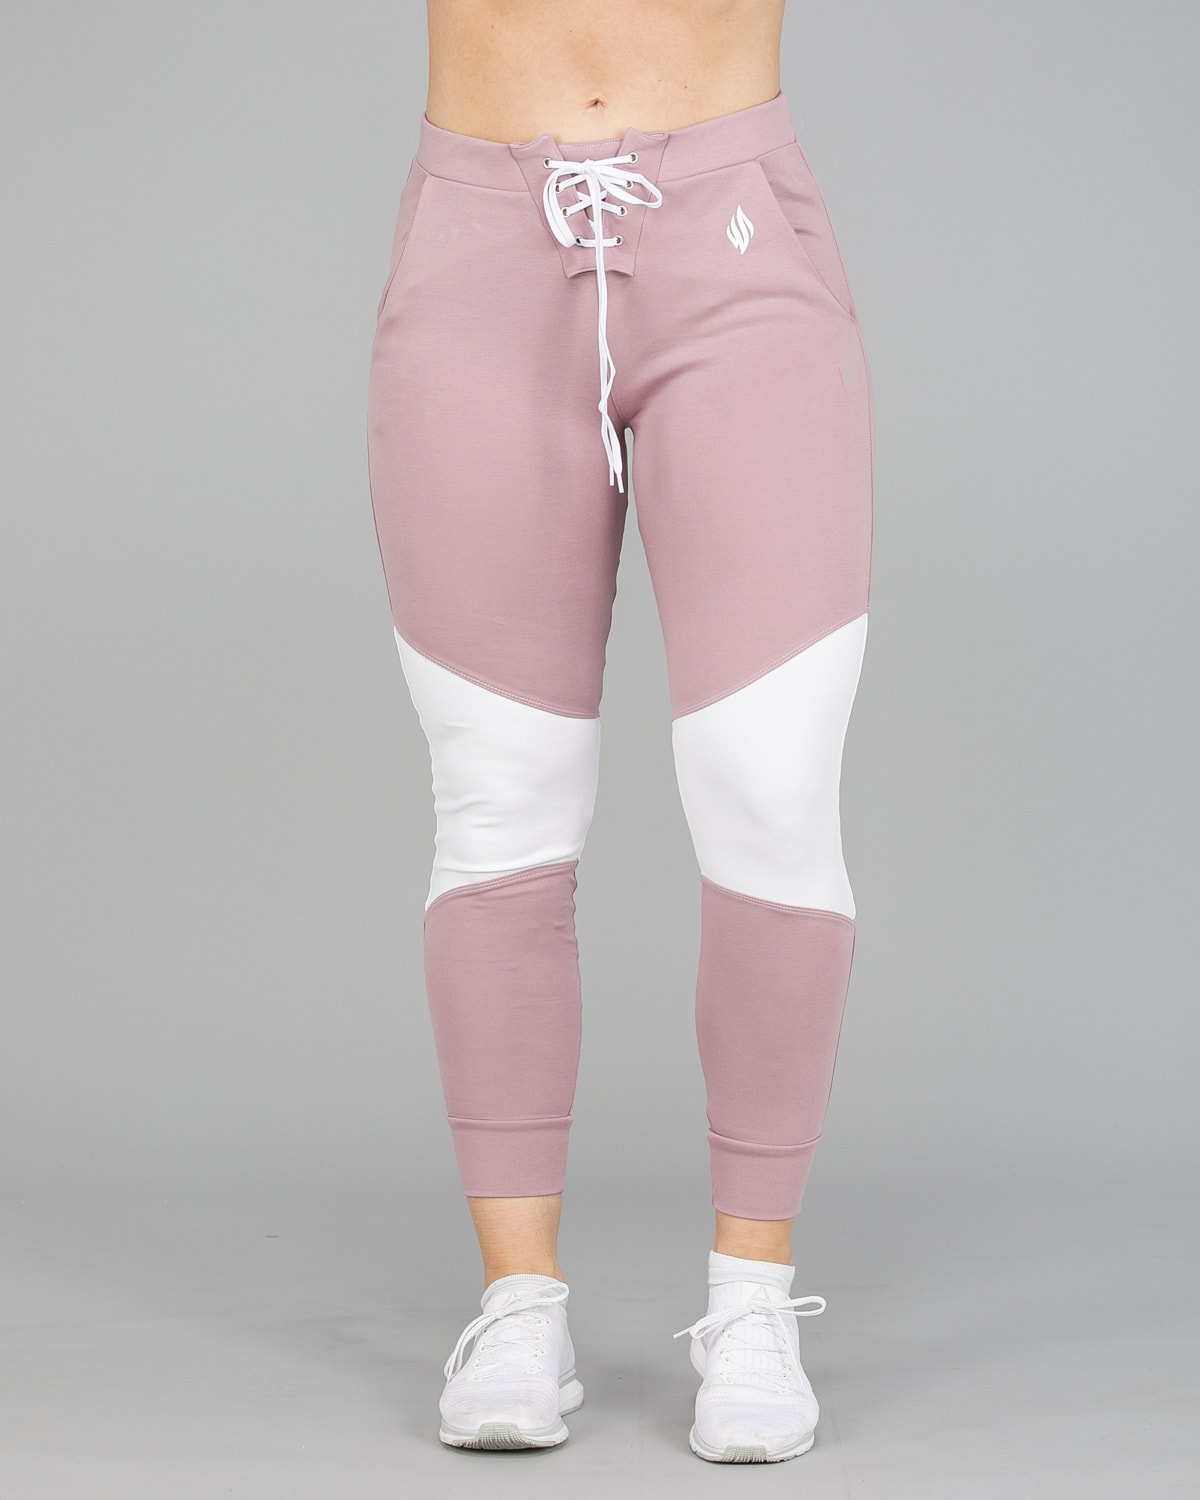 We Are Fit Melrose Pant2